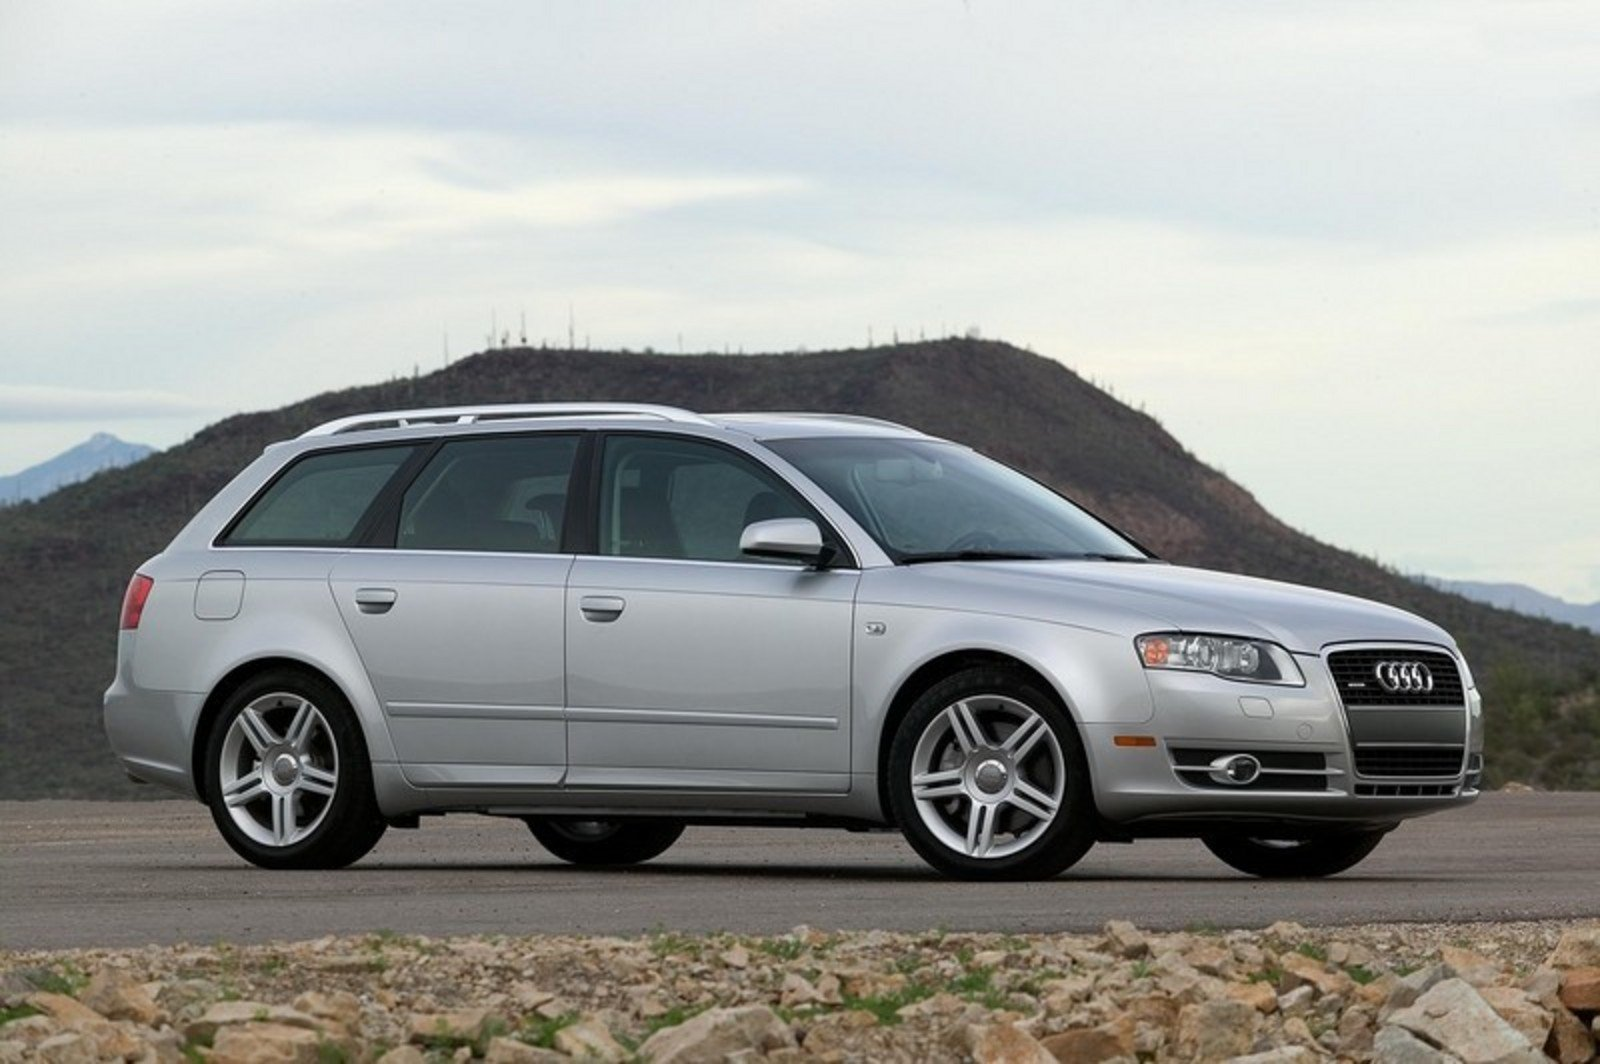 2006 audi a4 wagon picture 45157 car review top speed. Black Bedroom Furniture Sets. Home Design Ideas